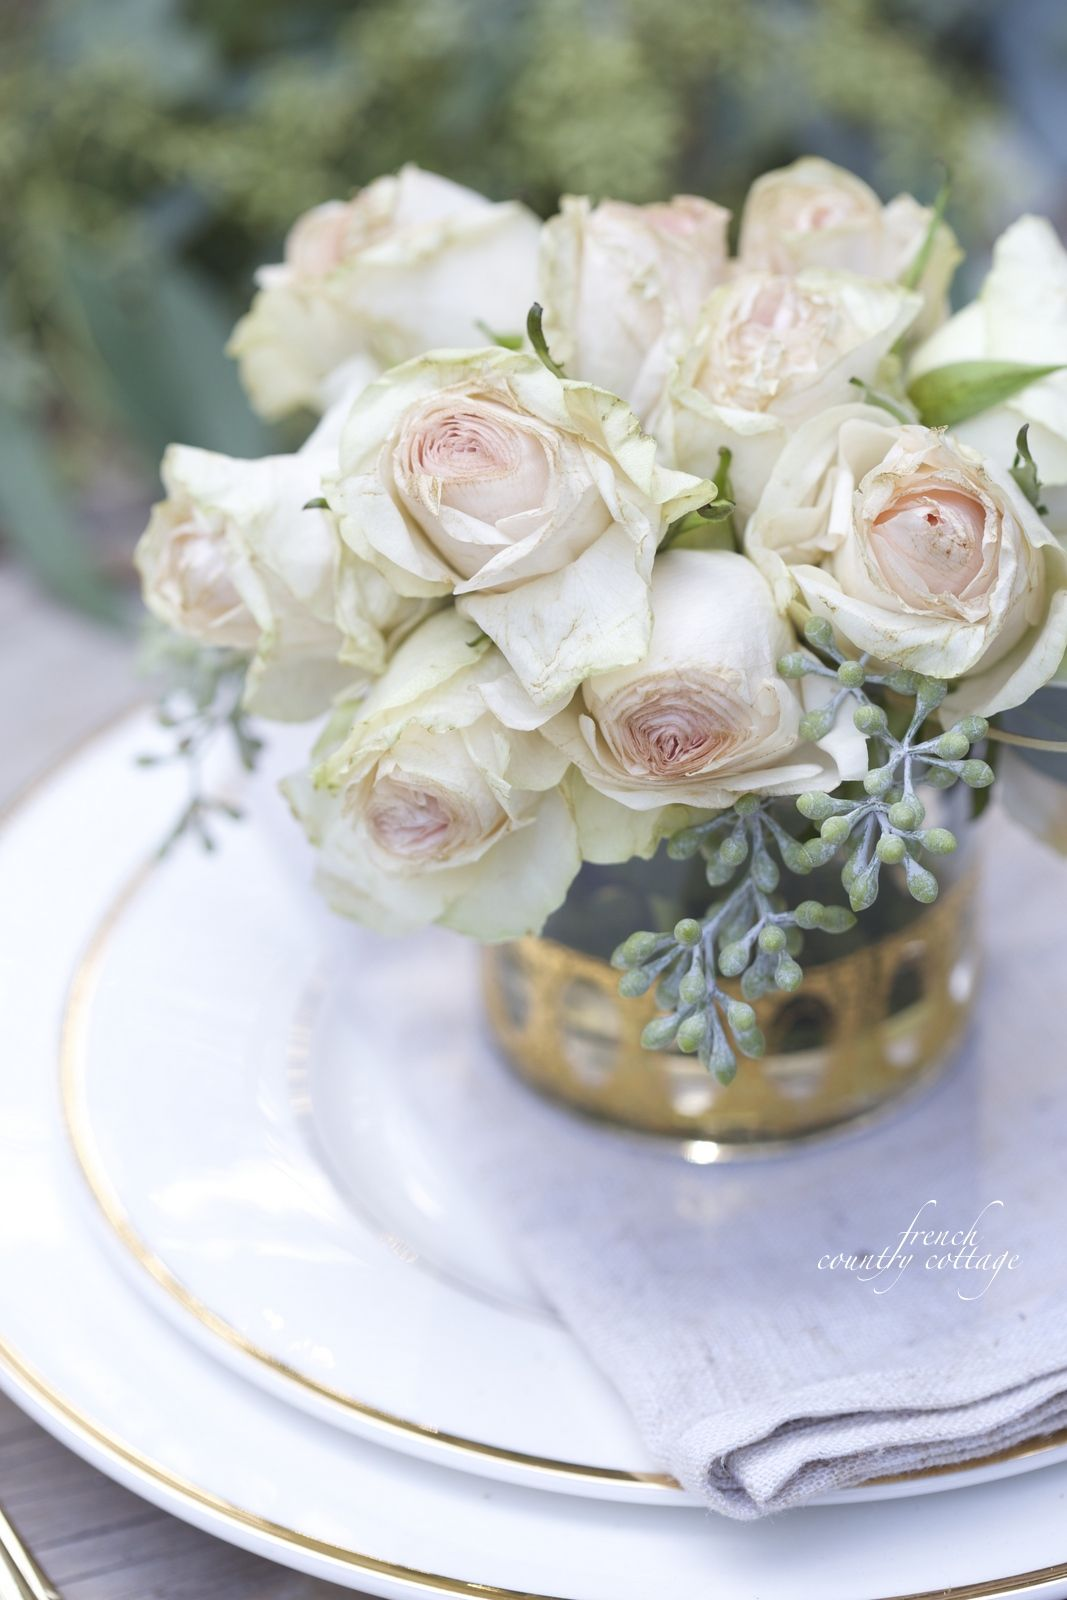 FRENCH COUNTRY COTTAGE: Treasures~ Vintage Gold Gles | Flowers ... on french country rose art, french country trees, french country cottage gardens, french country flower, french country vegetable gardens,